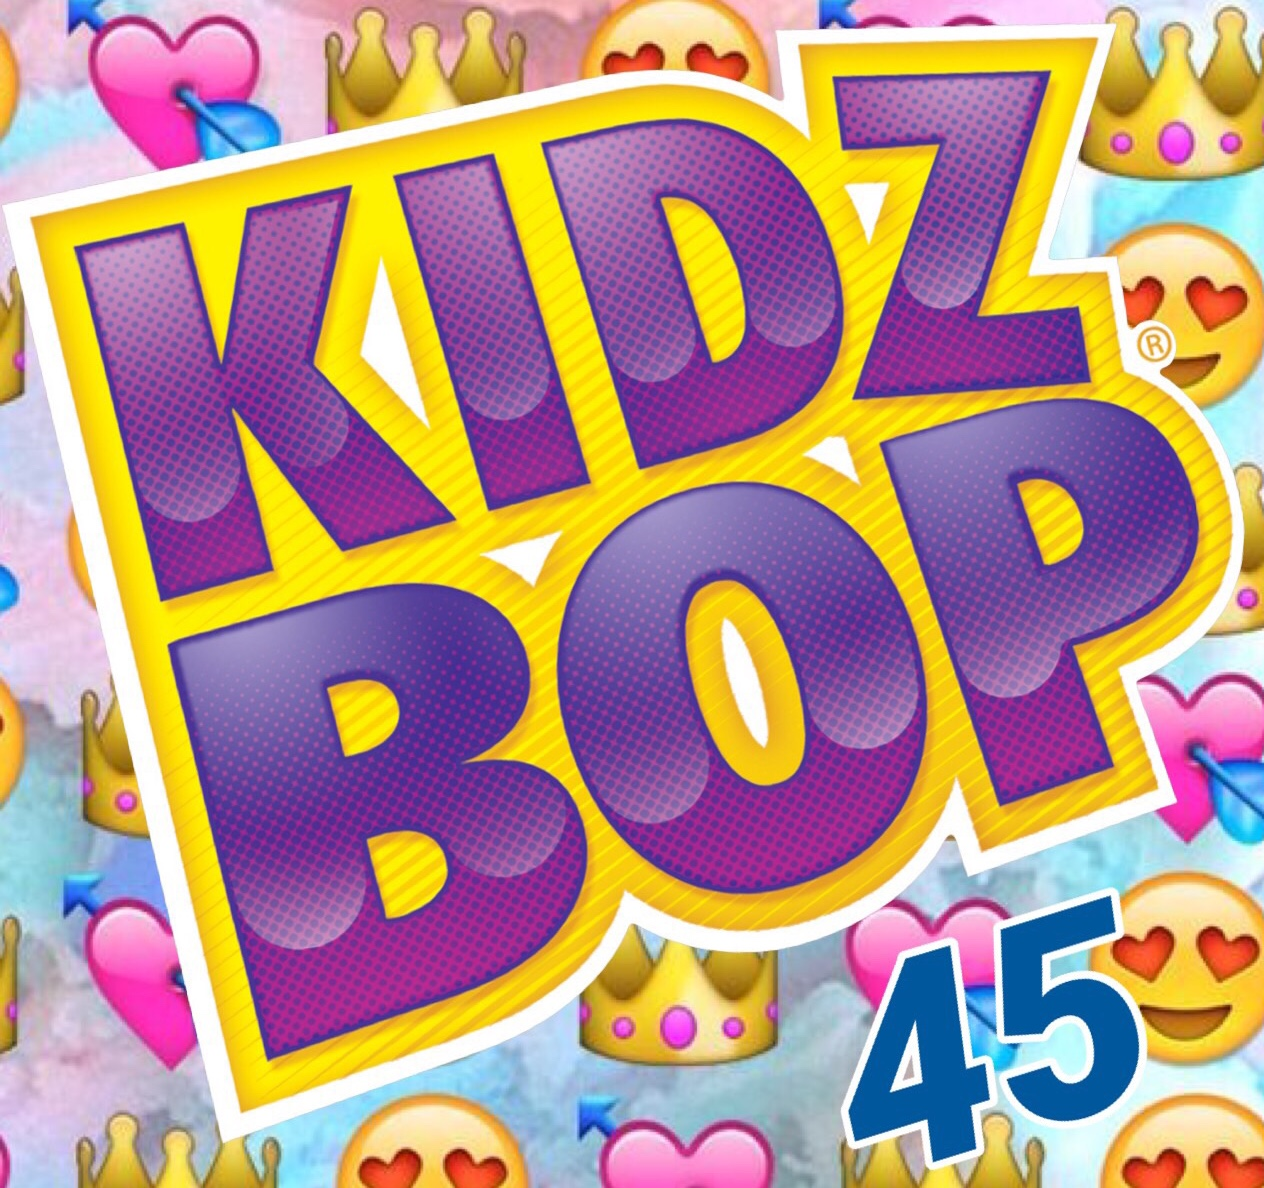 Kidz bop clipart picture download Kidz Bop 45 Tracklist | Kidz Bop Wiki | FANDOM powered by Wikia picture download